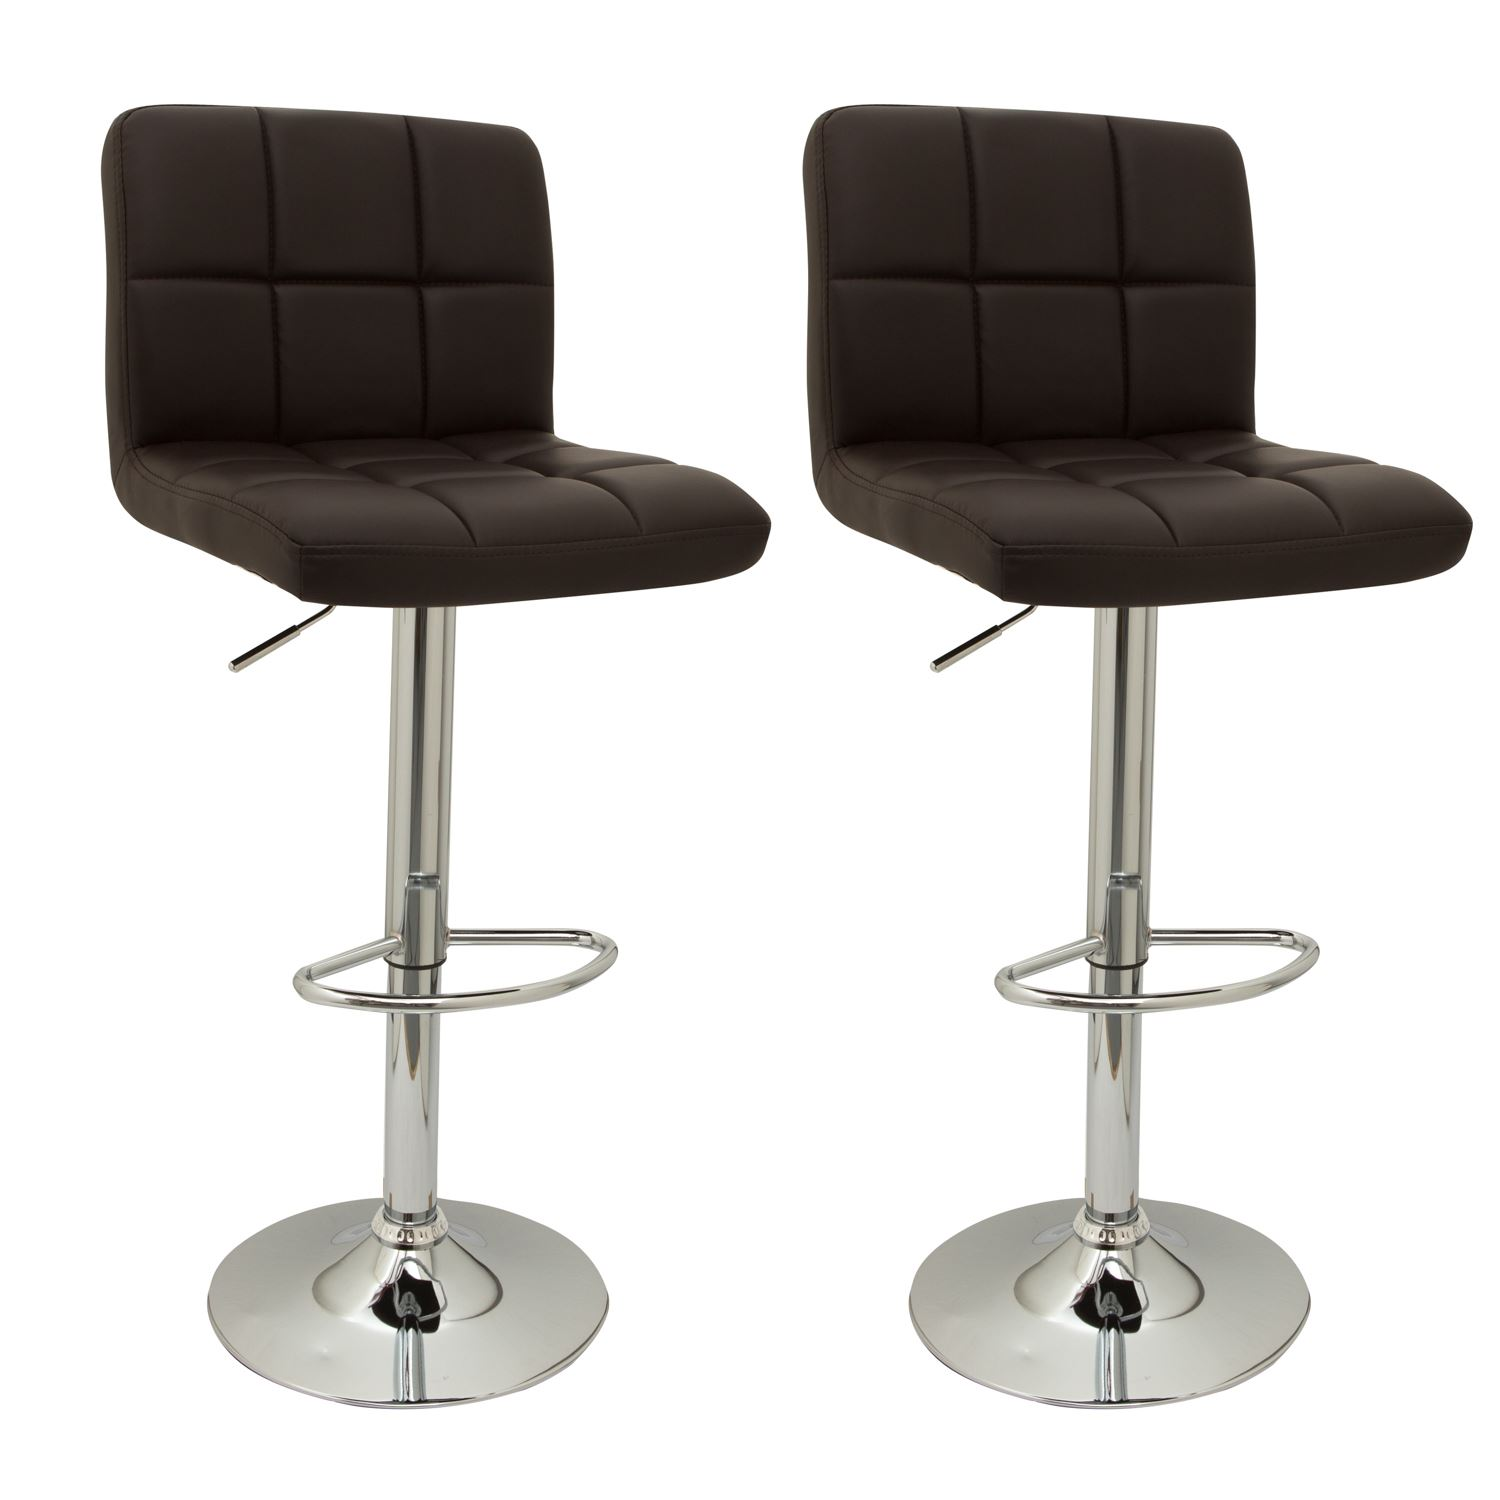 2 DESIGNER FAUX LEATHER KITCHEN BREAKFAST BAR STOOLS